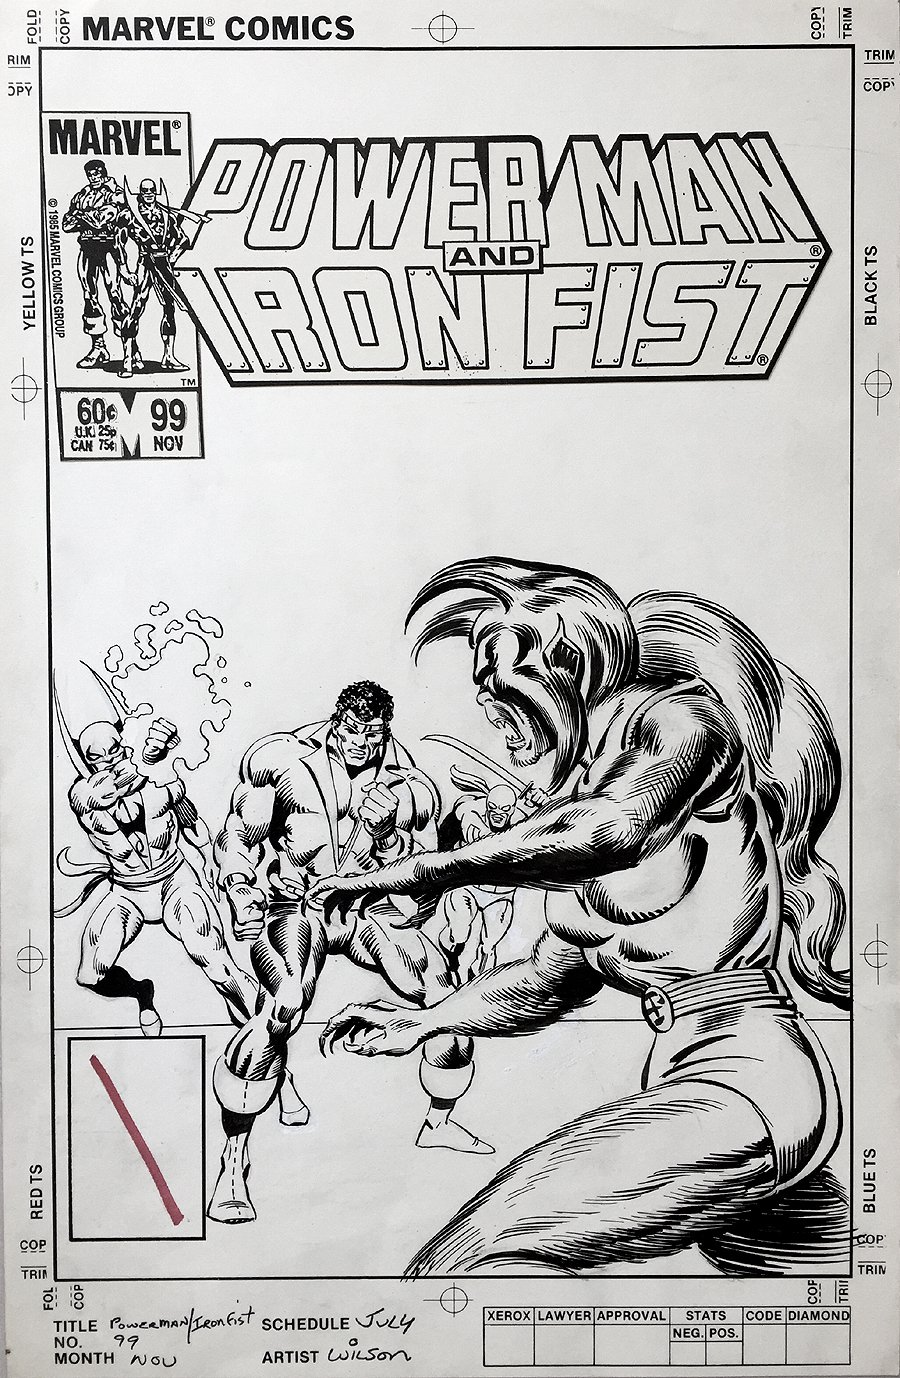 Power Man and Iron Fist #99 Un-Used Cover (1983)